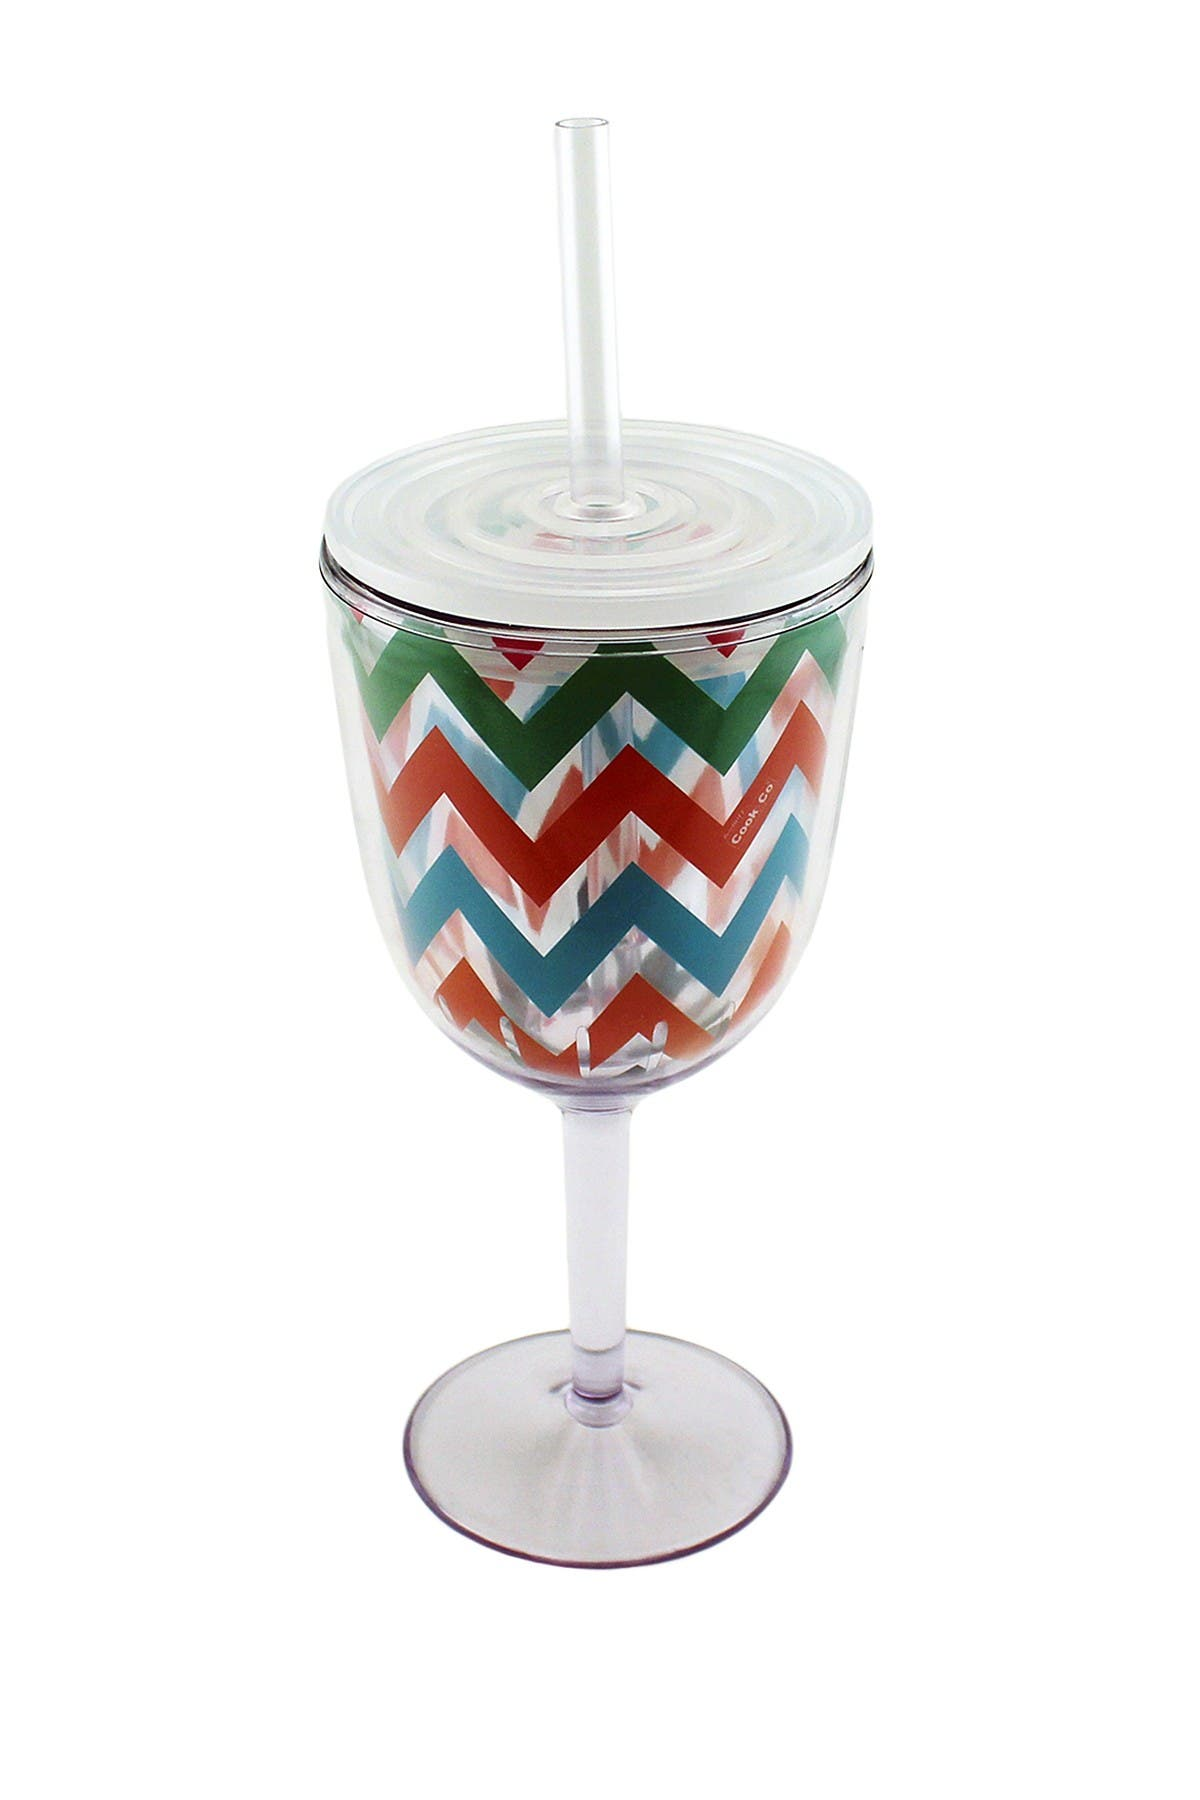 BergHOFF Acrylic Chevron Pattern Wine Glass - Set of 4 at Nordstrom Rack